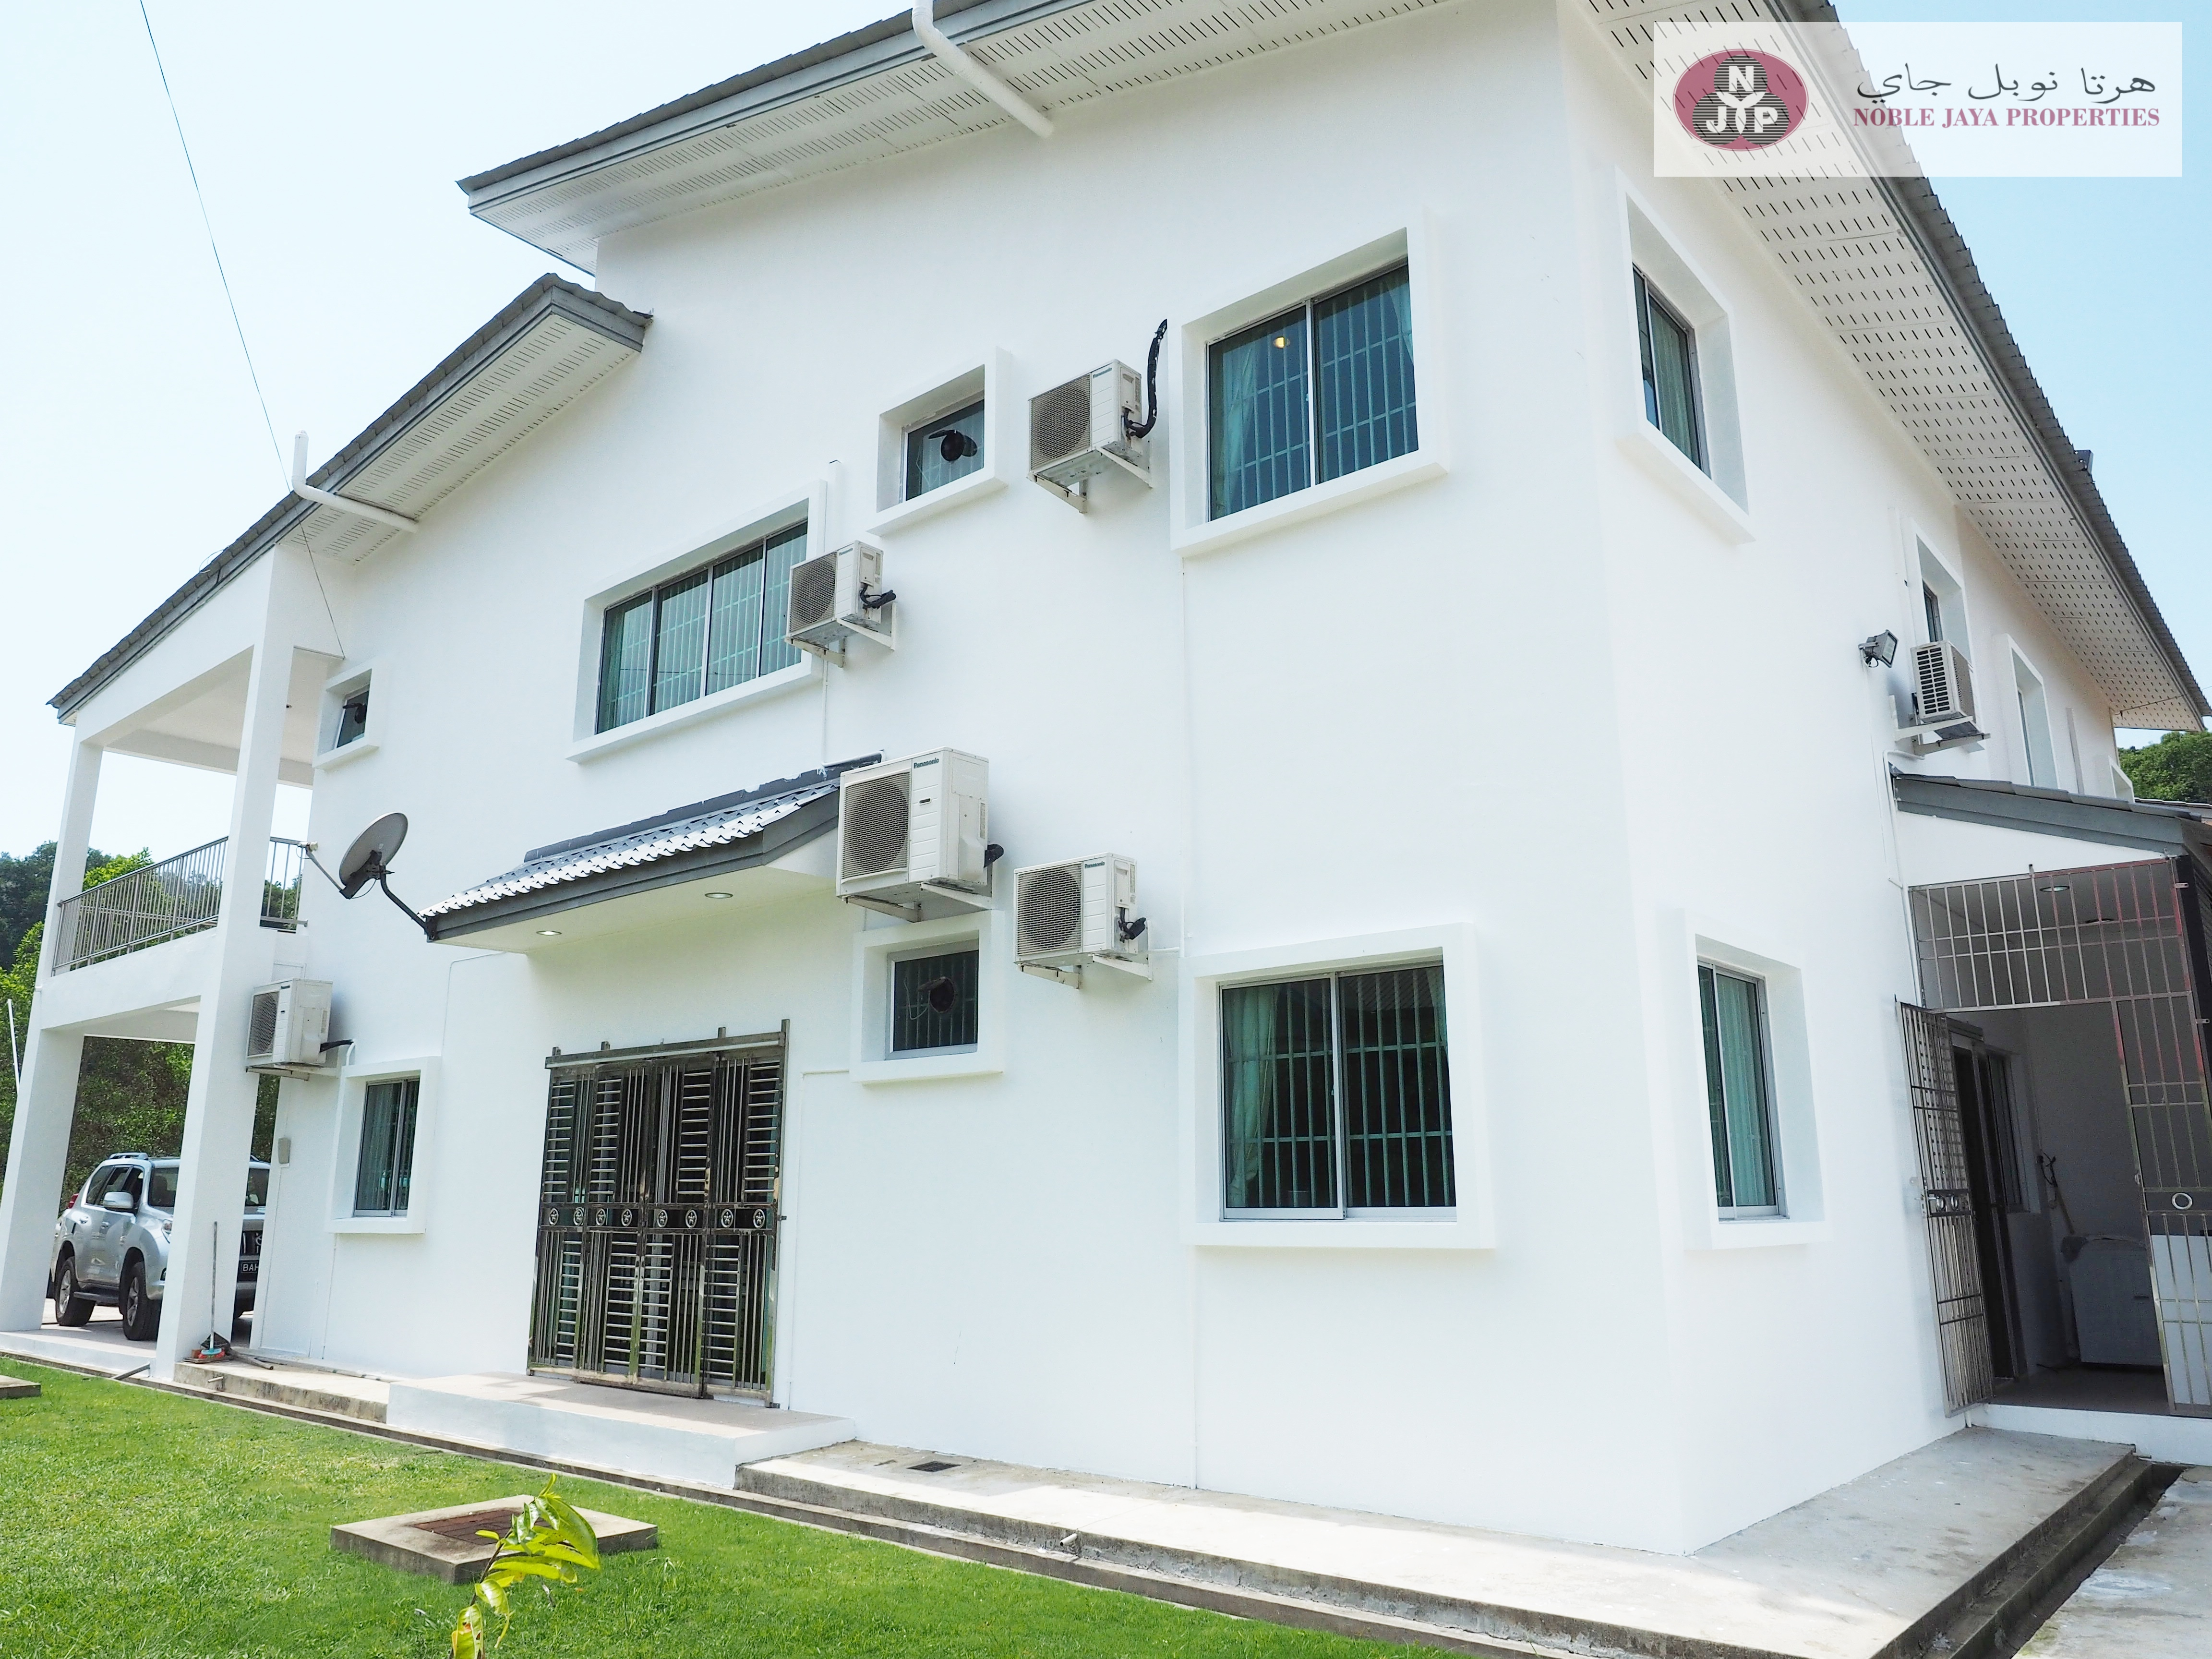 House for rent in Jalan Subok